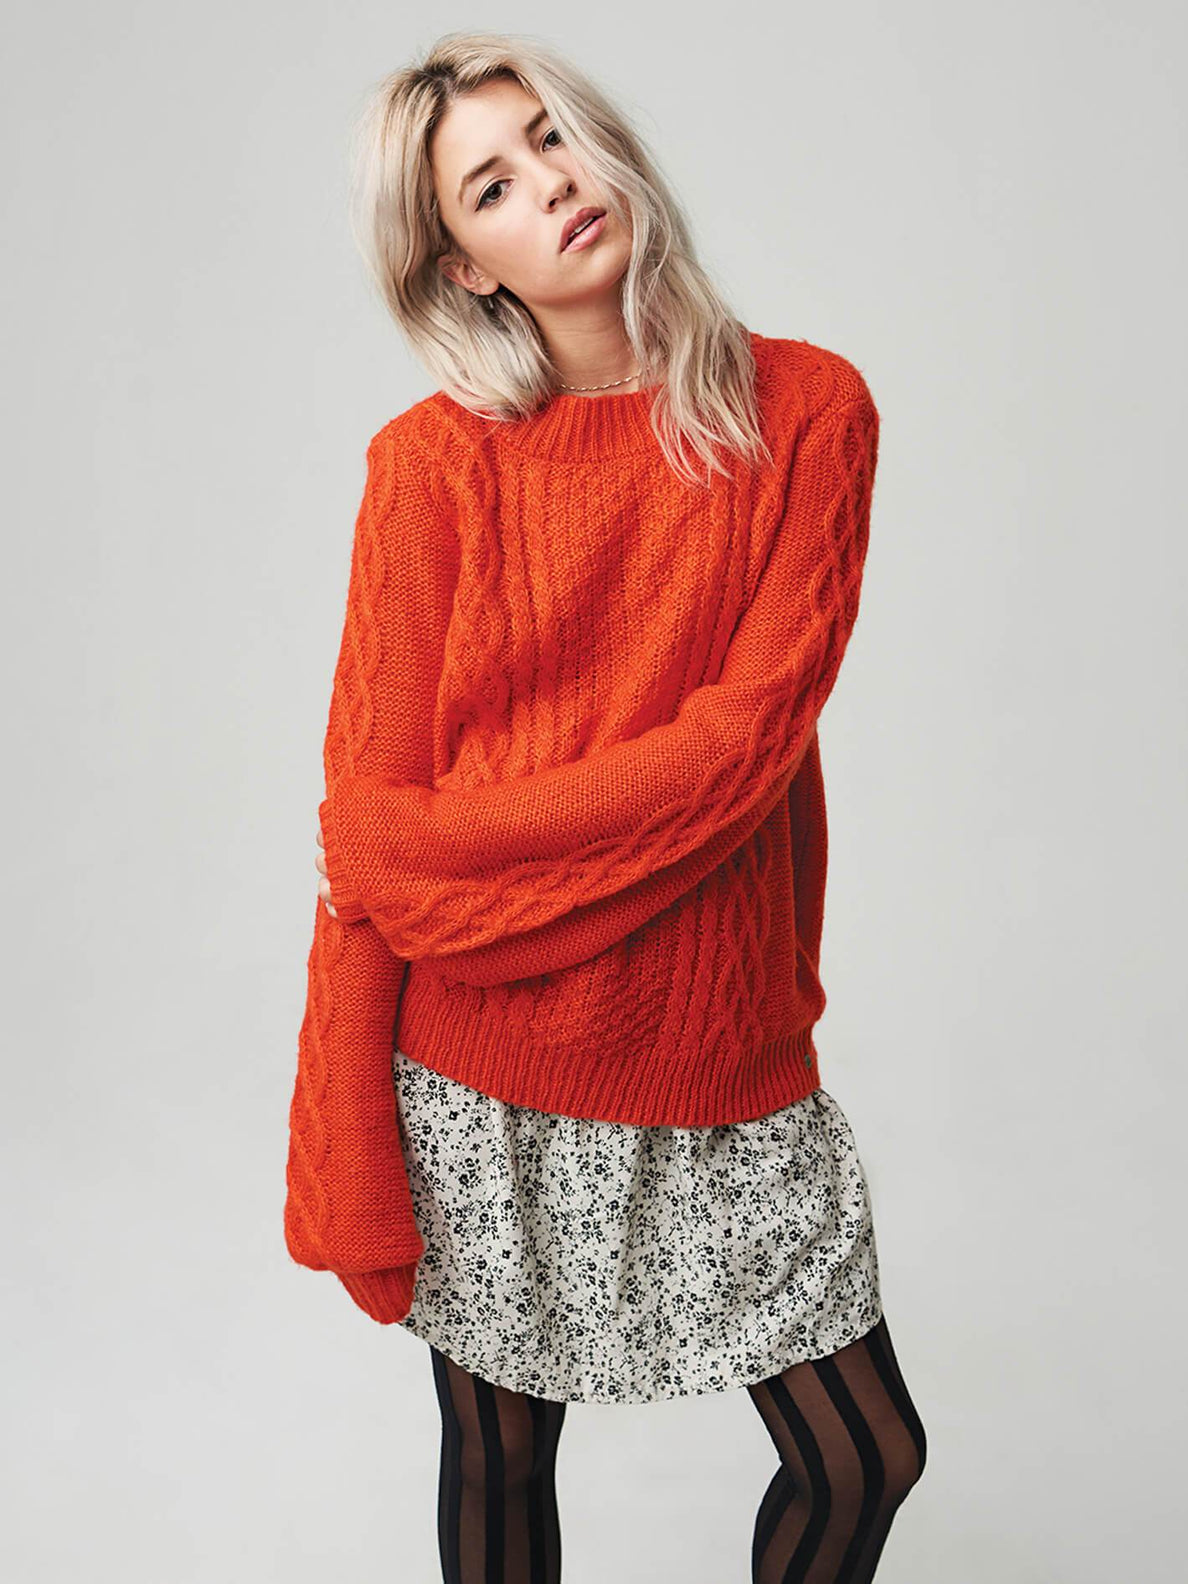 Hellooo Sweater In Tangerine, Second Alternate View